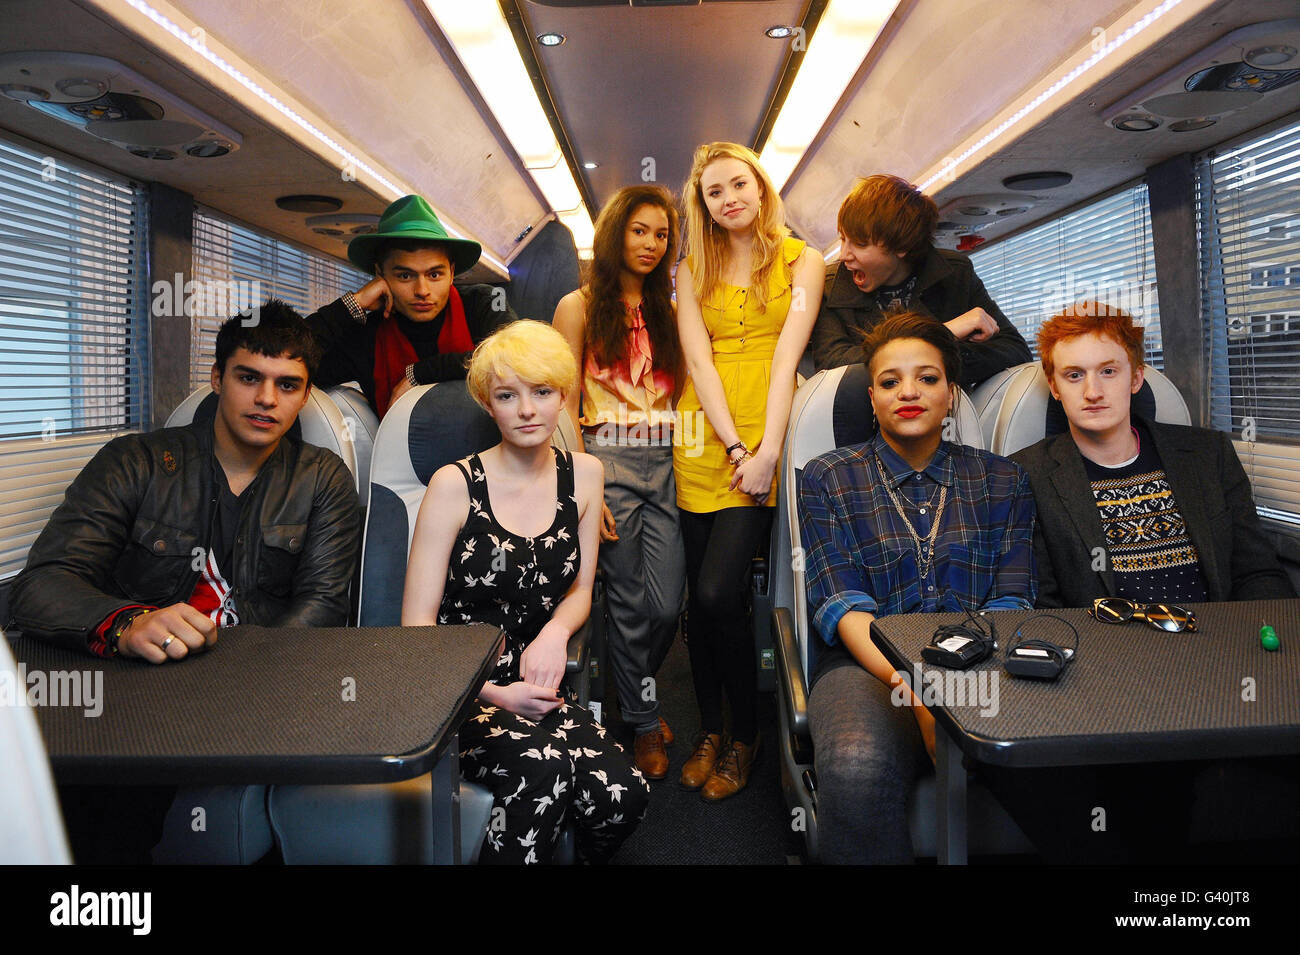 New Skins Cast - London Stock Photo